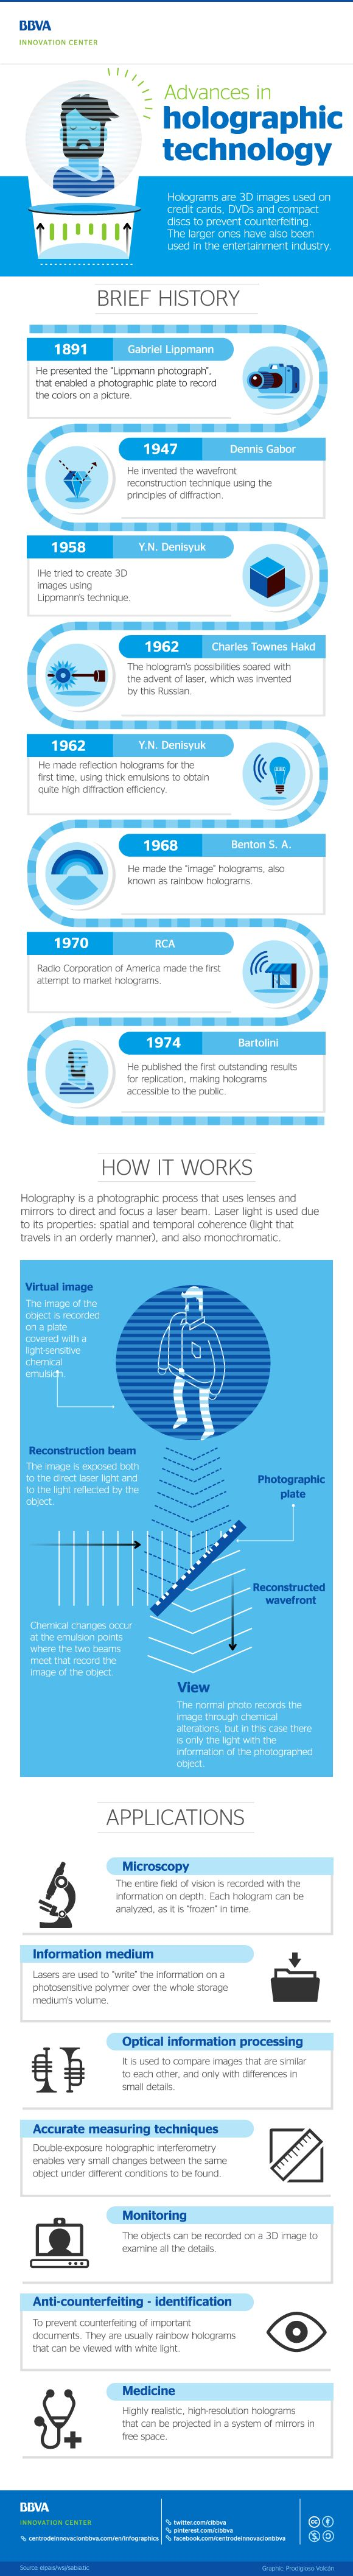 #Infographic: Advances in #holographic technology